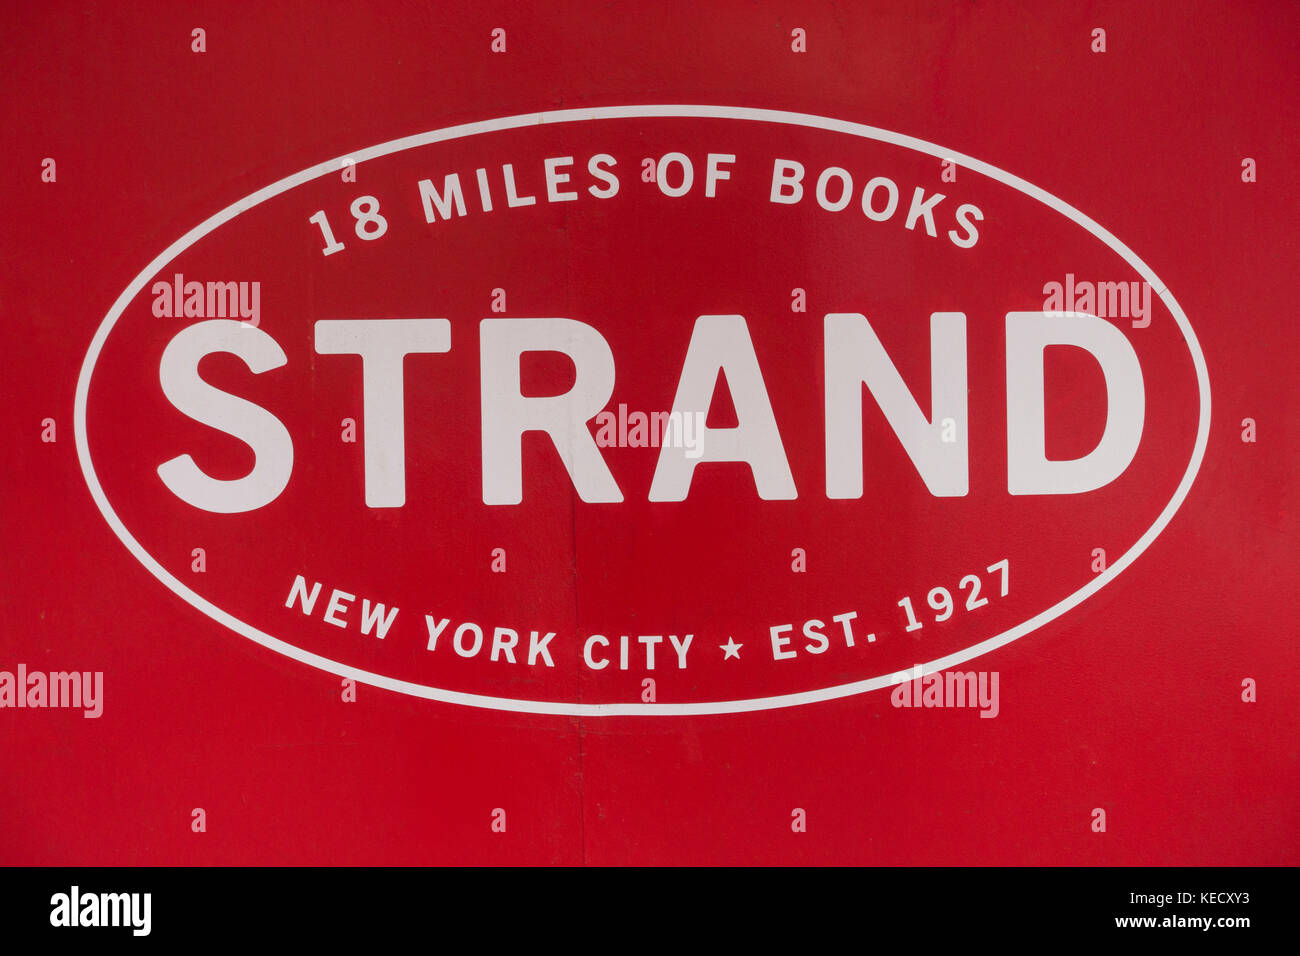 strand bookstore in midtown nyc - Stock Image